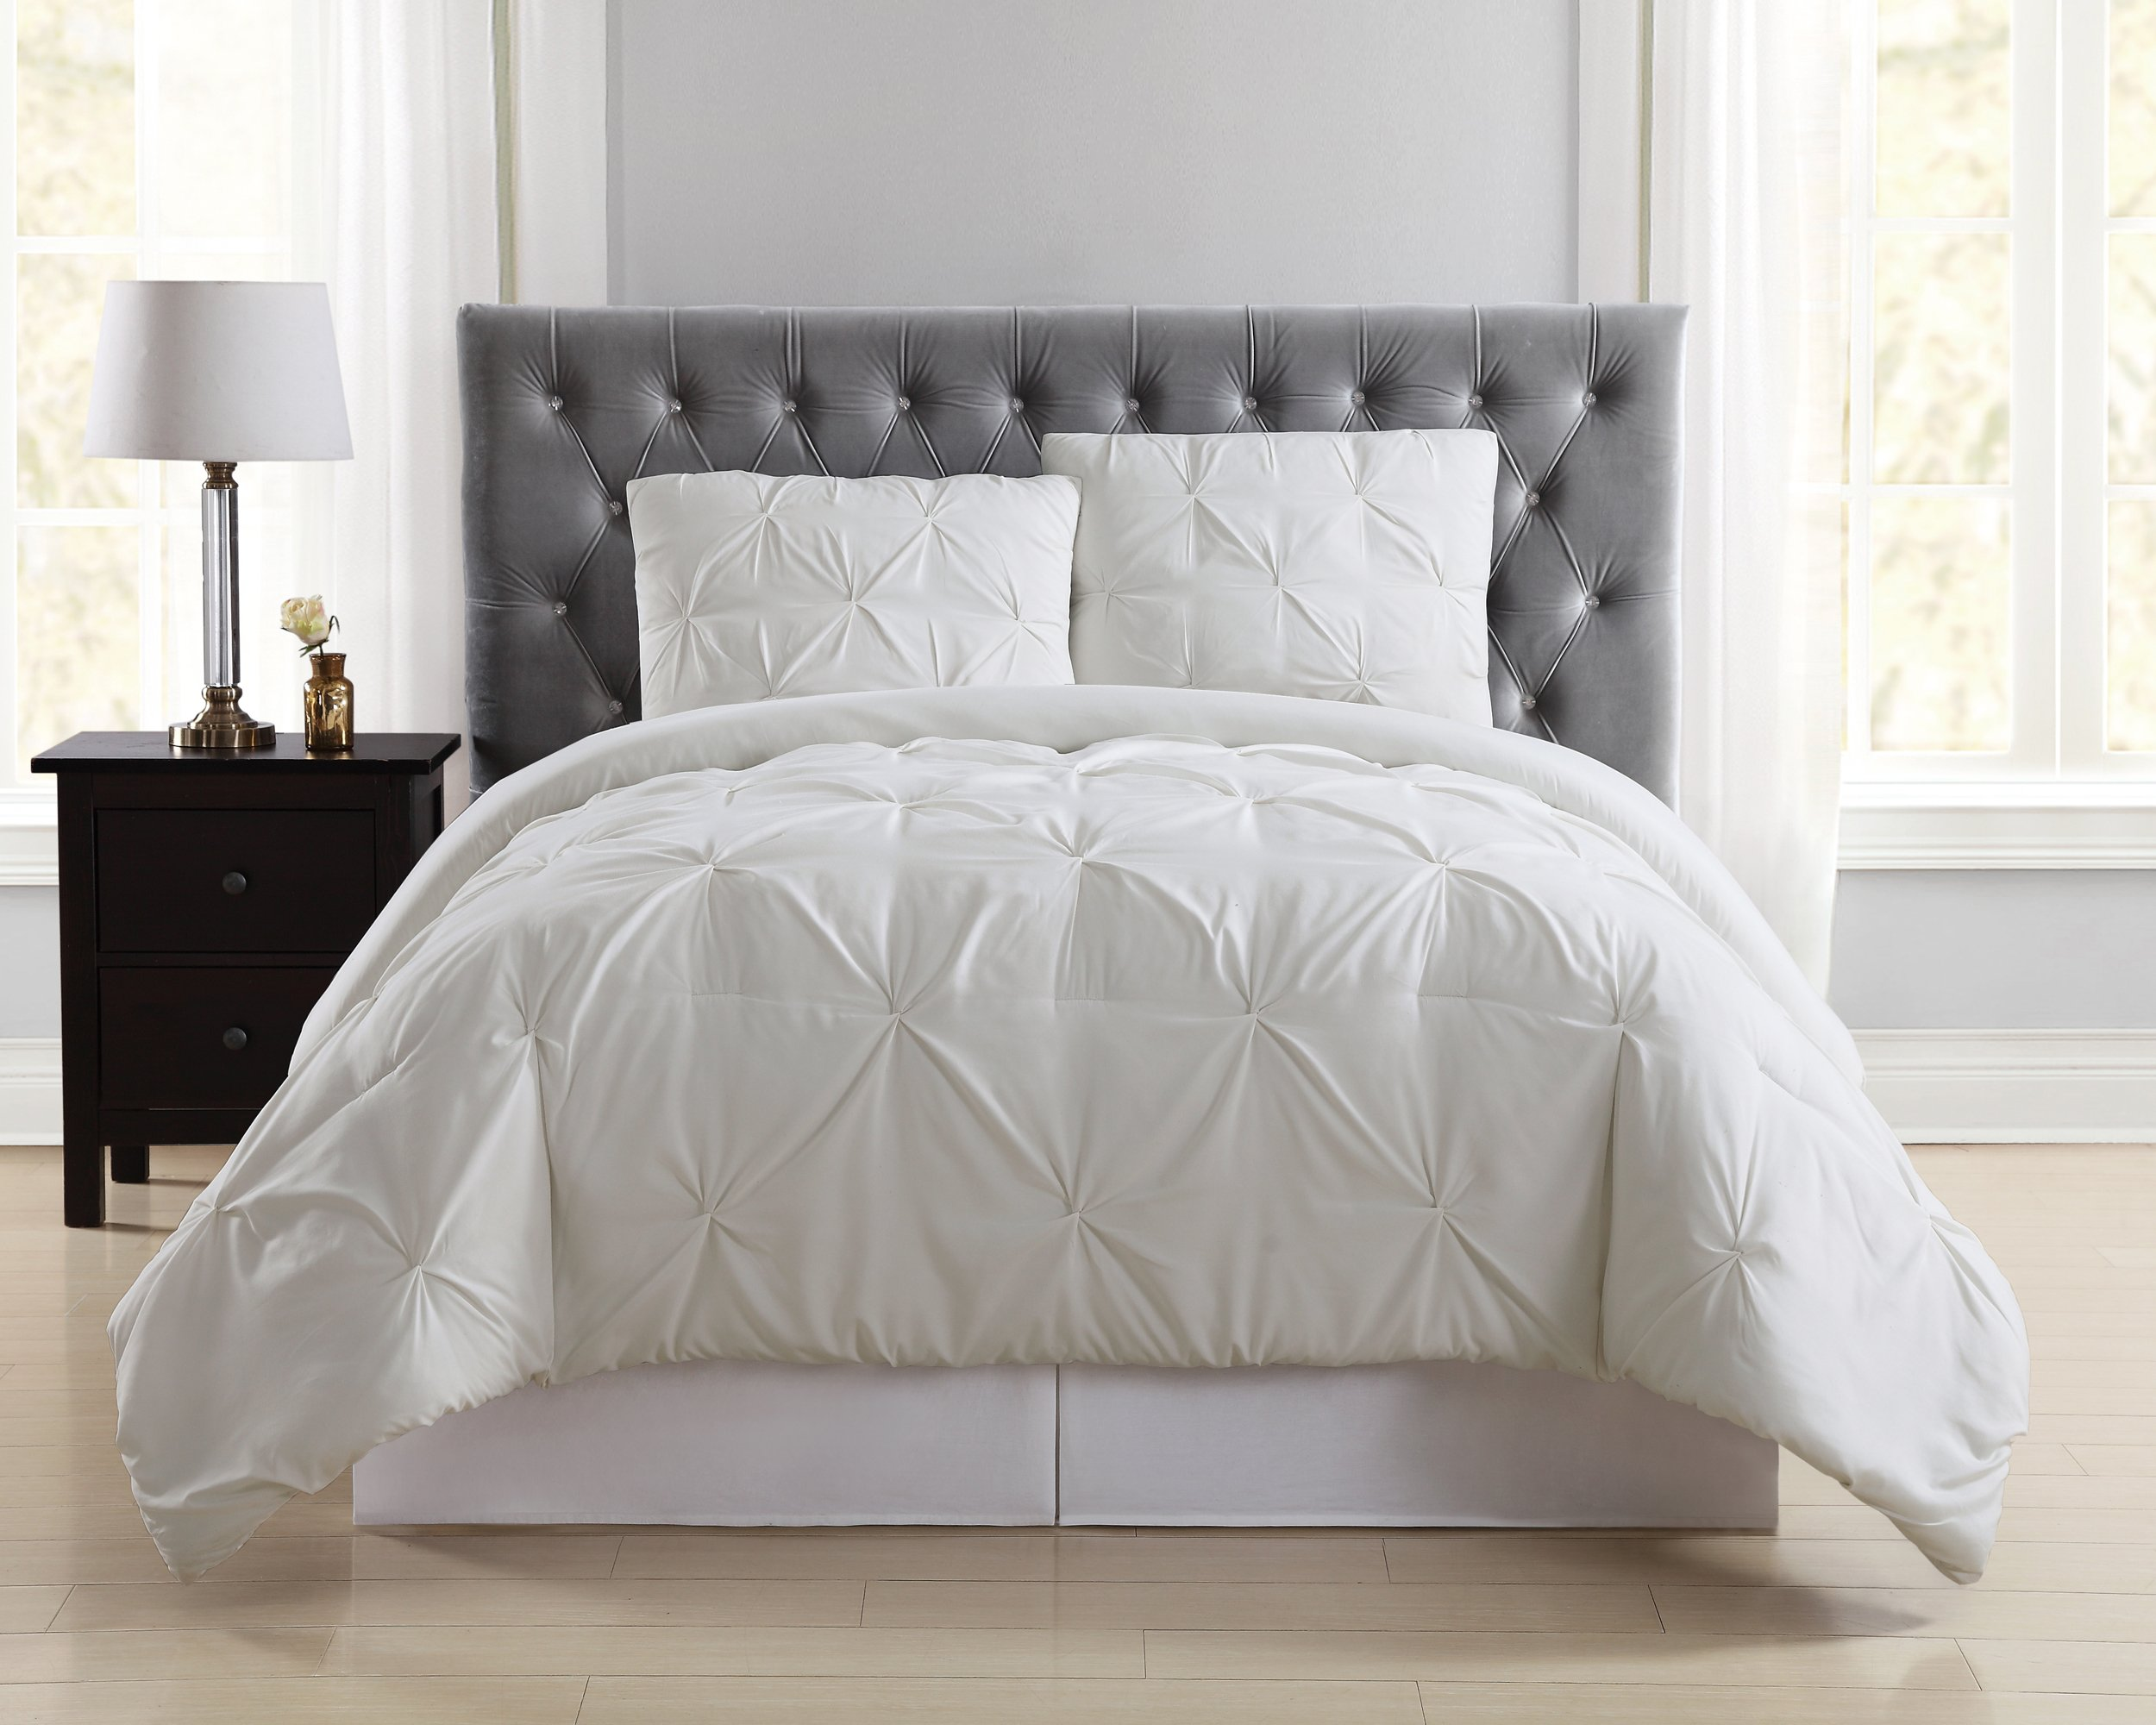 Truly Soft Everyday Pleated Comforter Set, King, Ivory by Truly Soft Everyday